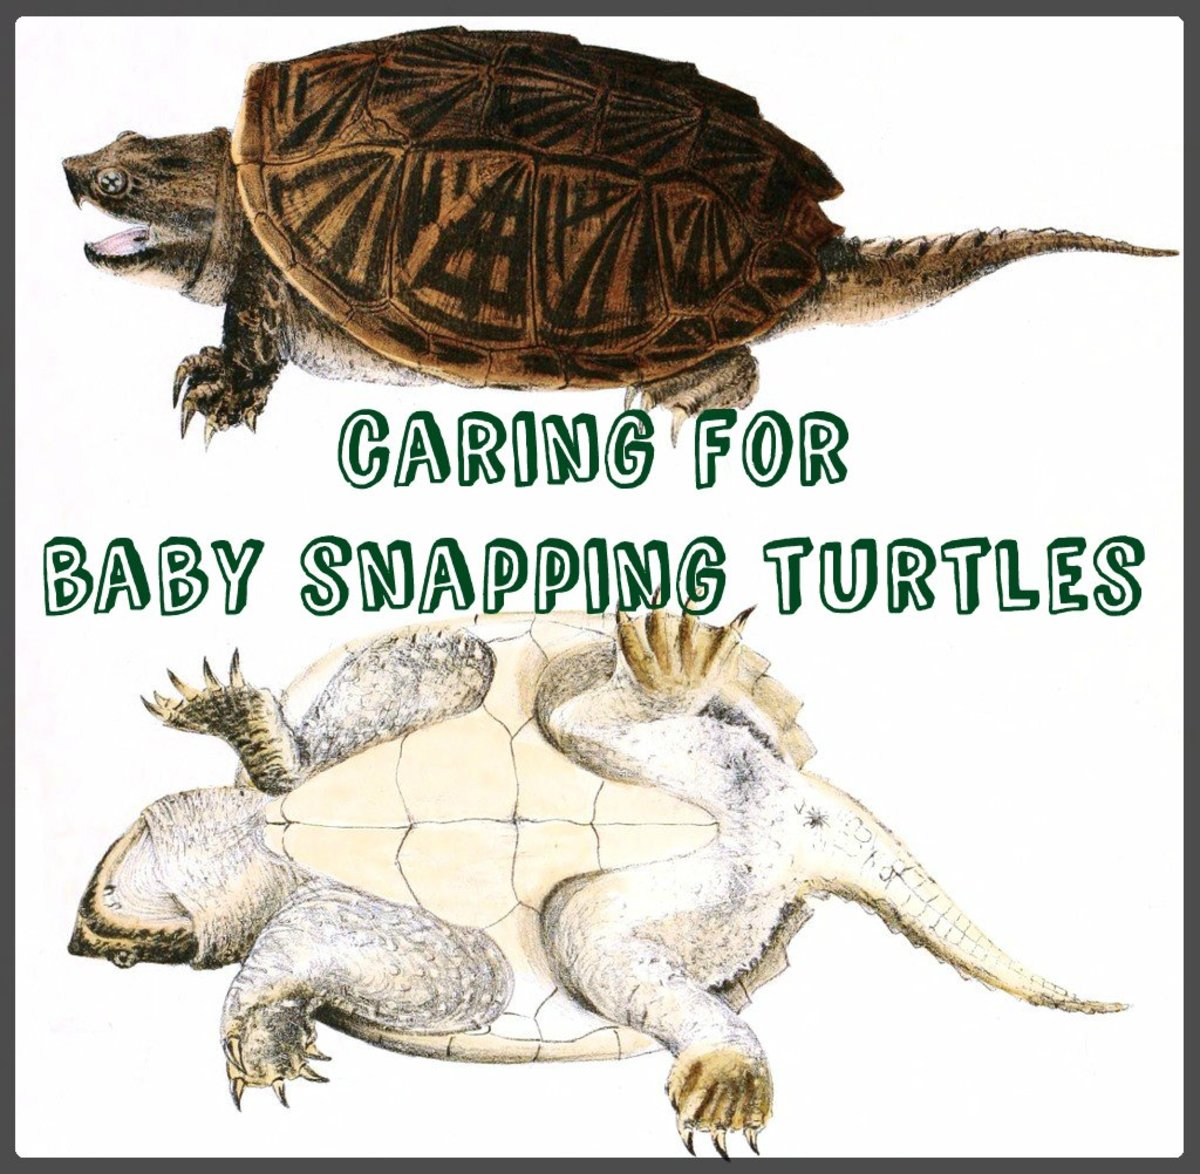 How to Care for Baby Snapping Turtles | PetHelpful